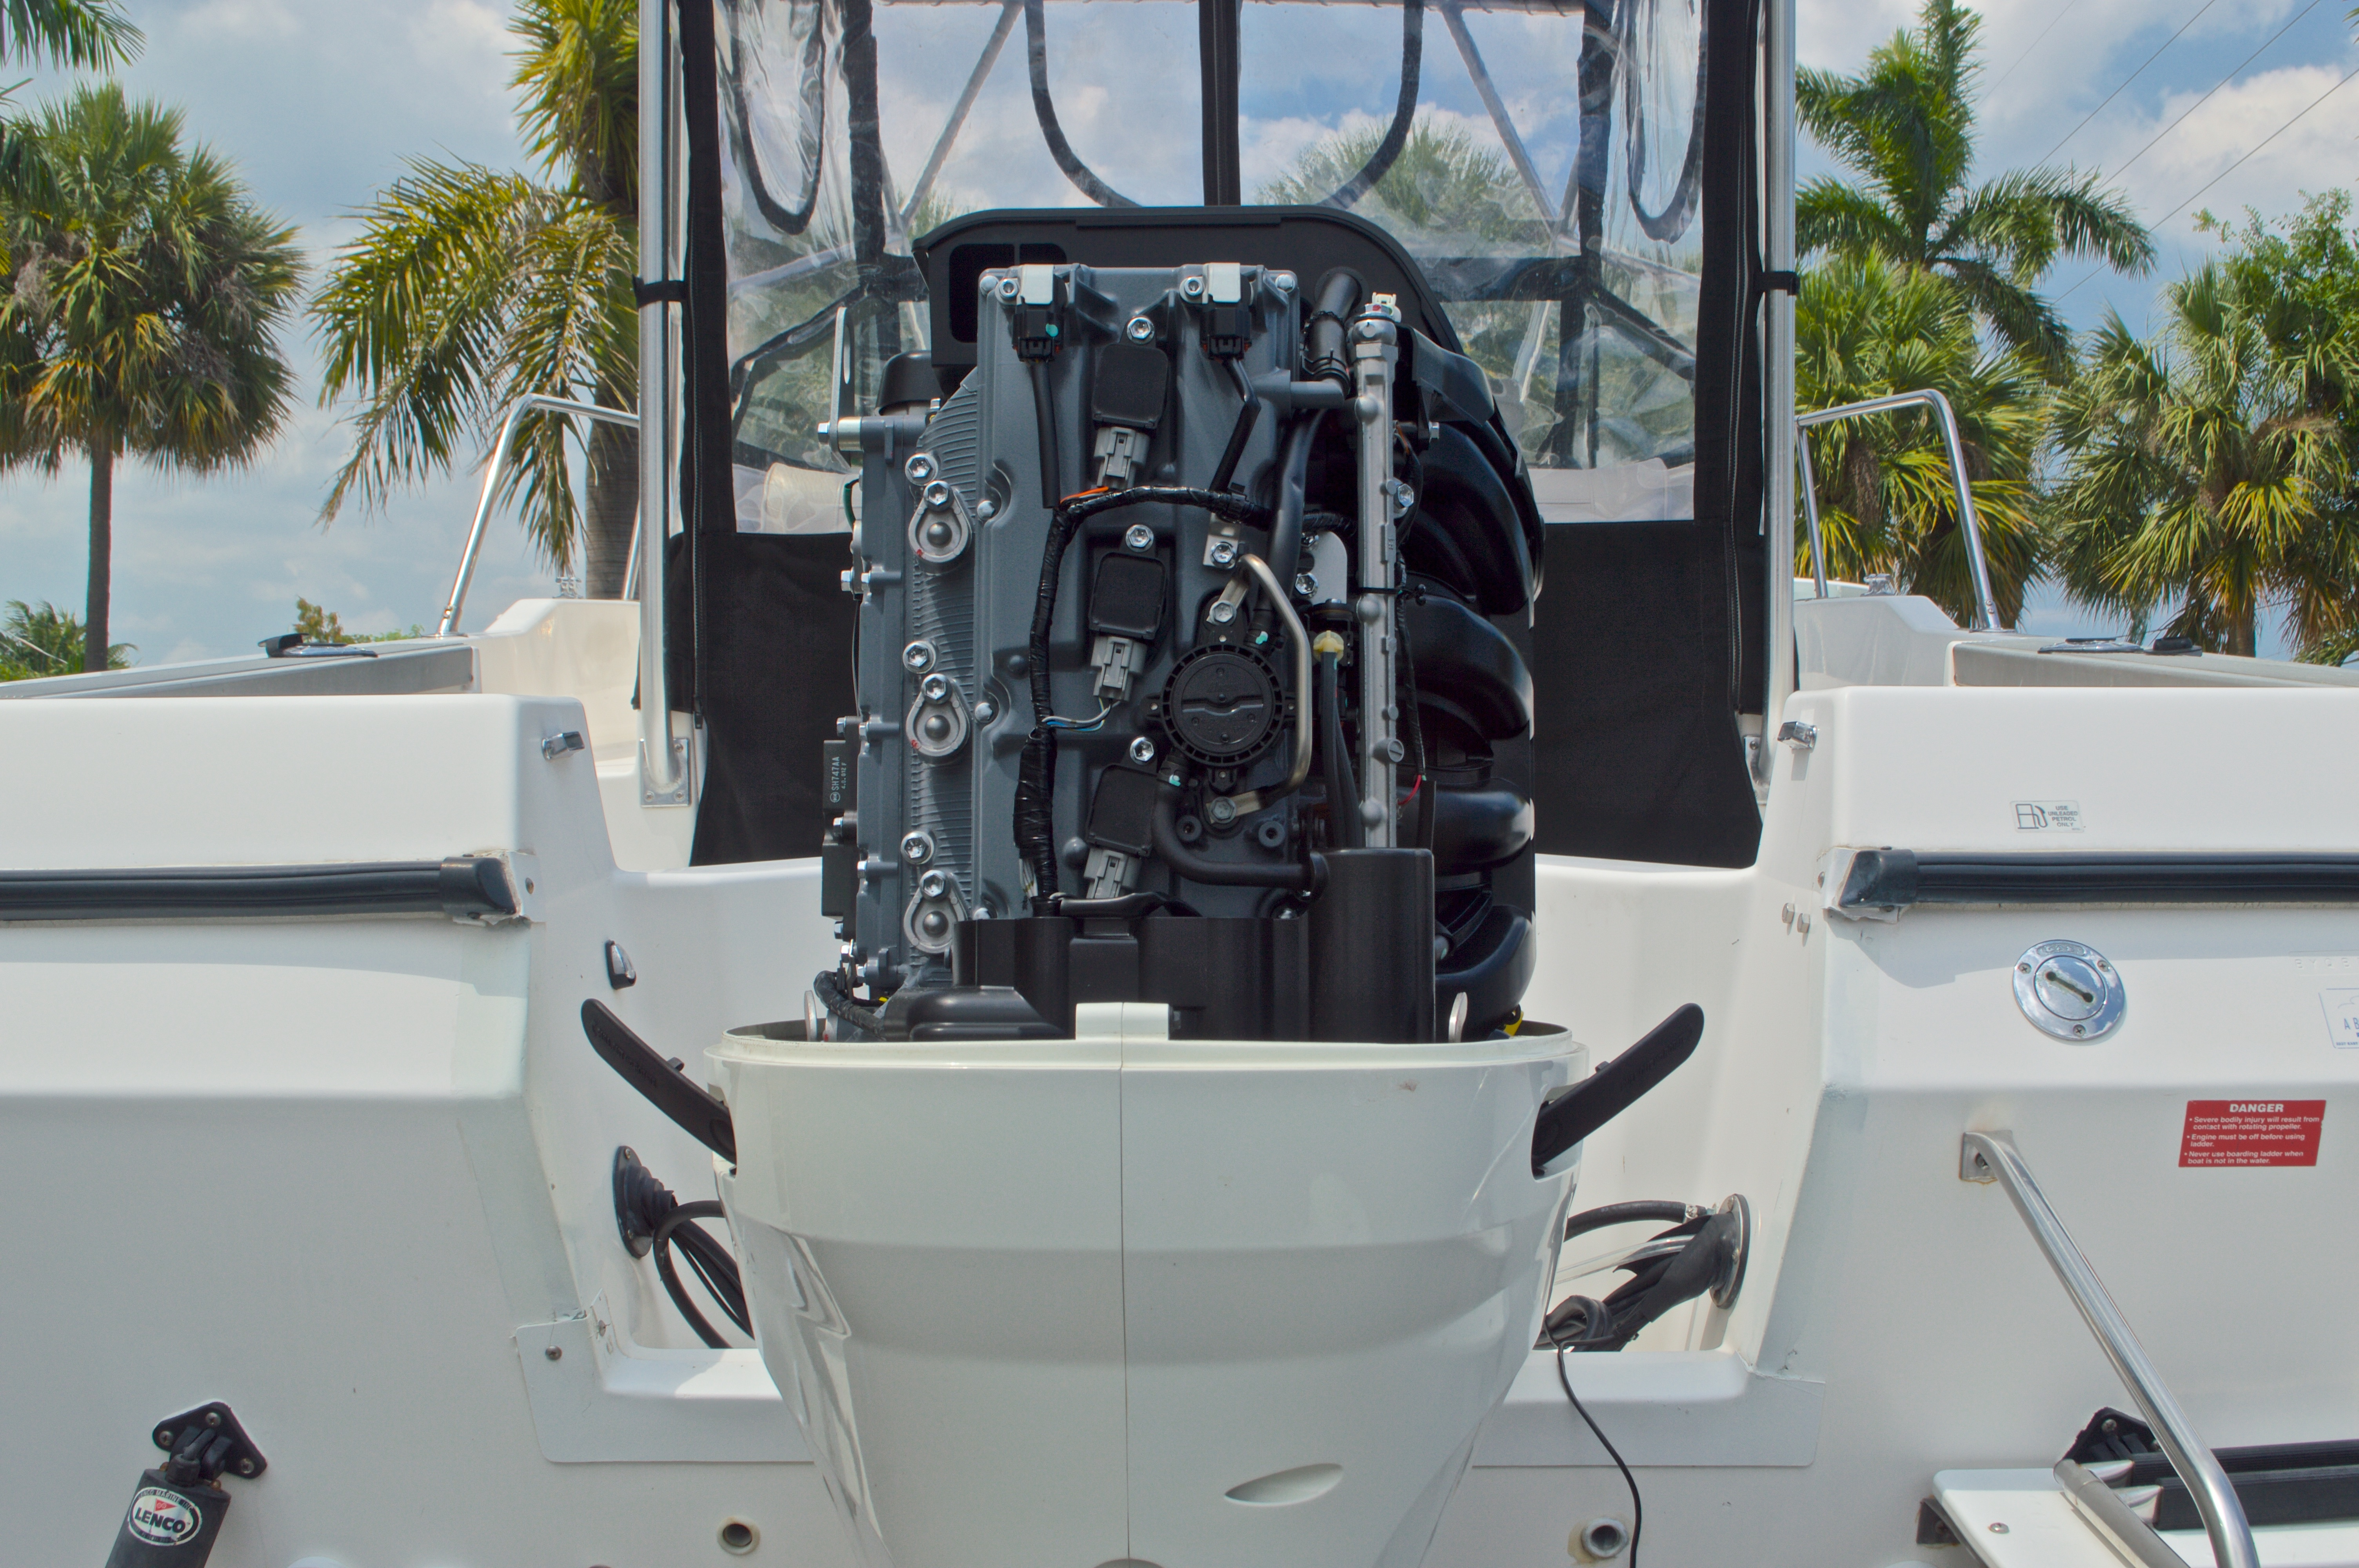 Thumbnail 16 for Used 1998 Bayliner Trophy 2002 WA Walkaround boat for sale in West Palm Beach, FL